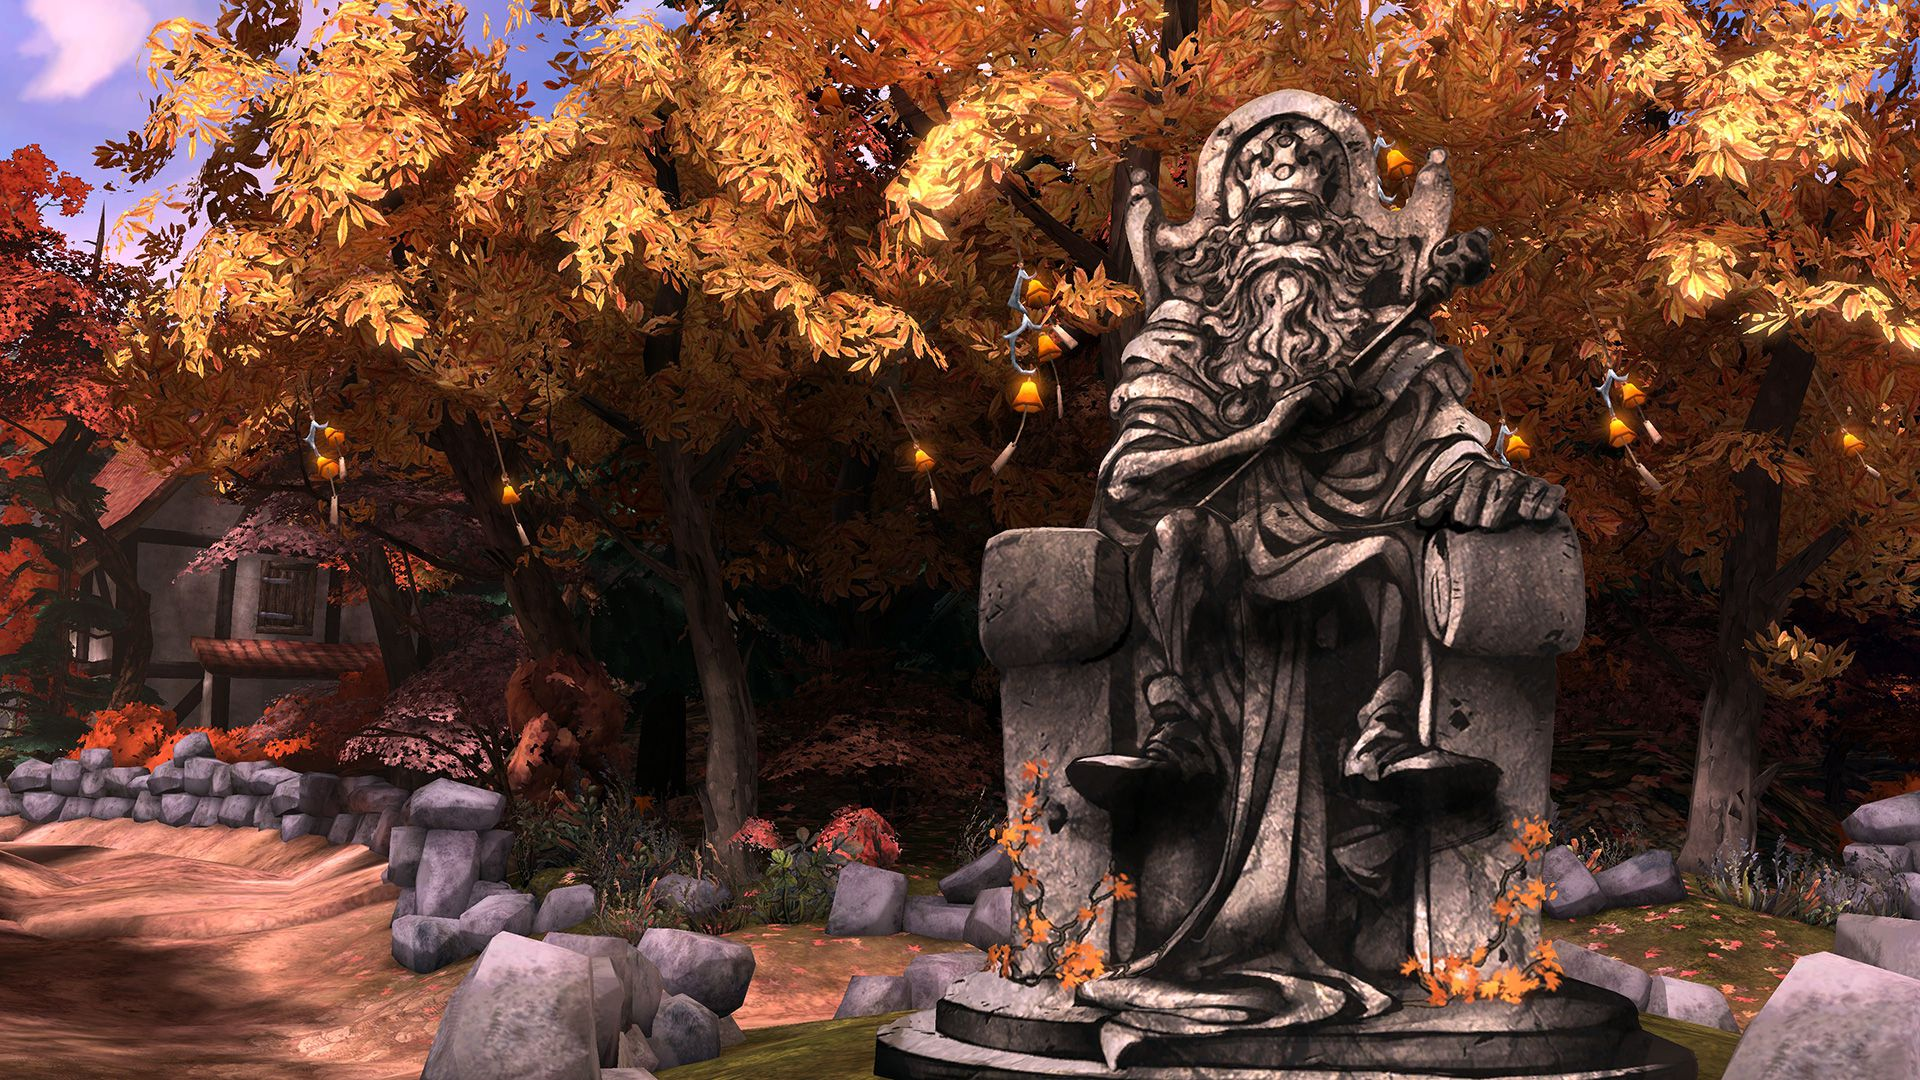 King's Quest: A Knight to Remember screenshot 7 1920